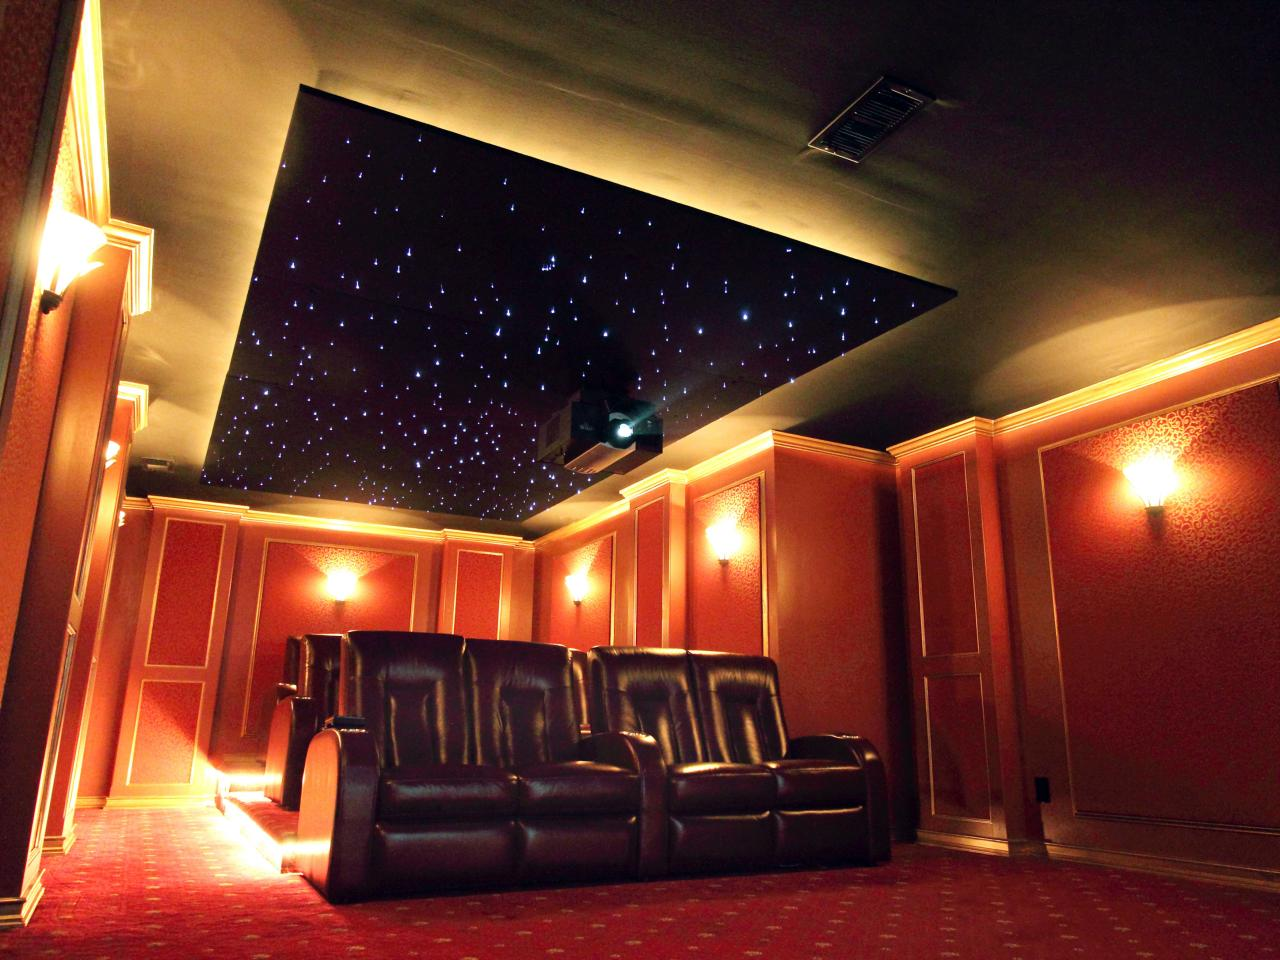 Home theater lighting ideas tips hgtv Home cinema interior design ideas